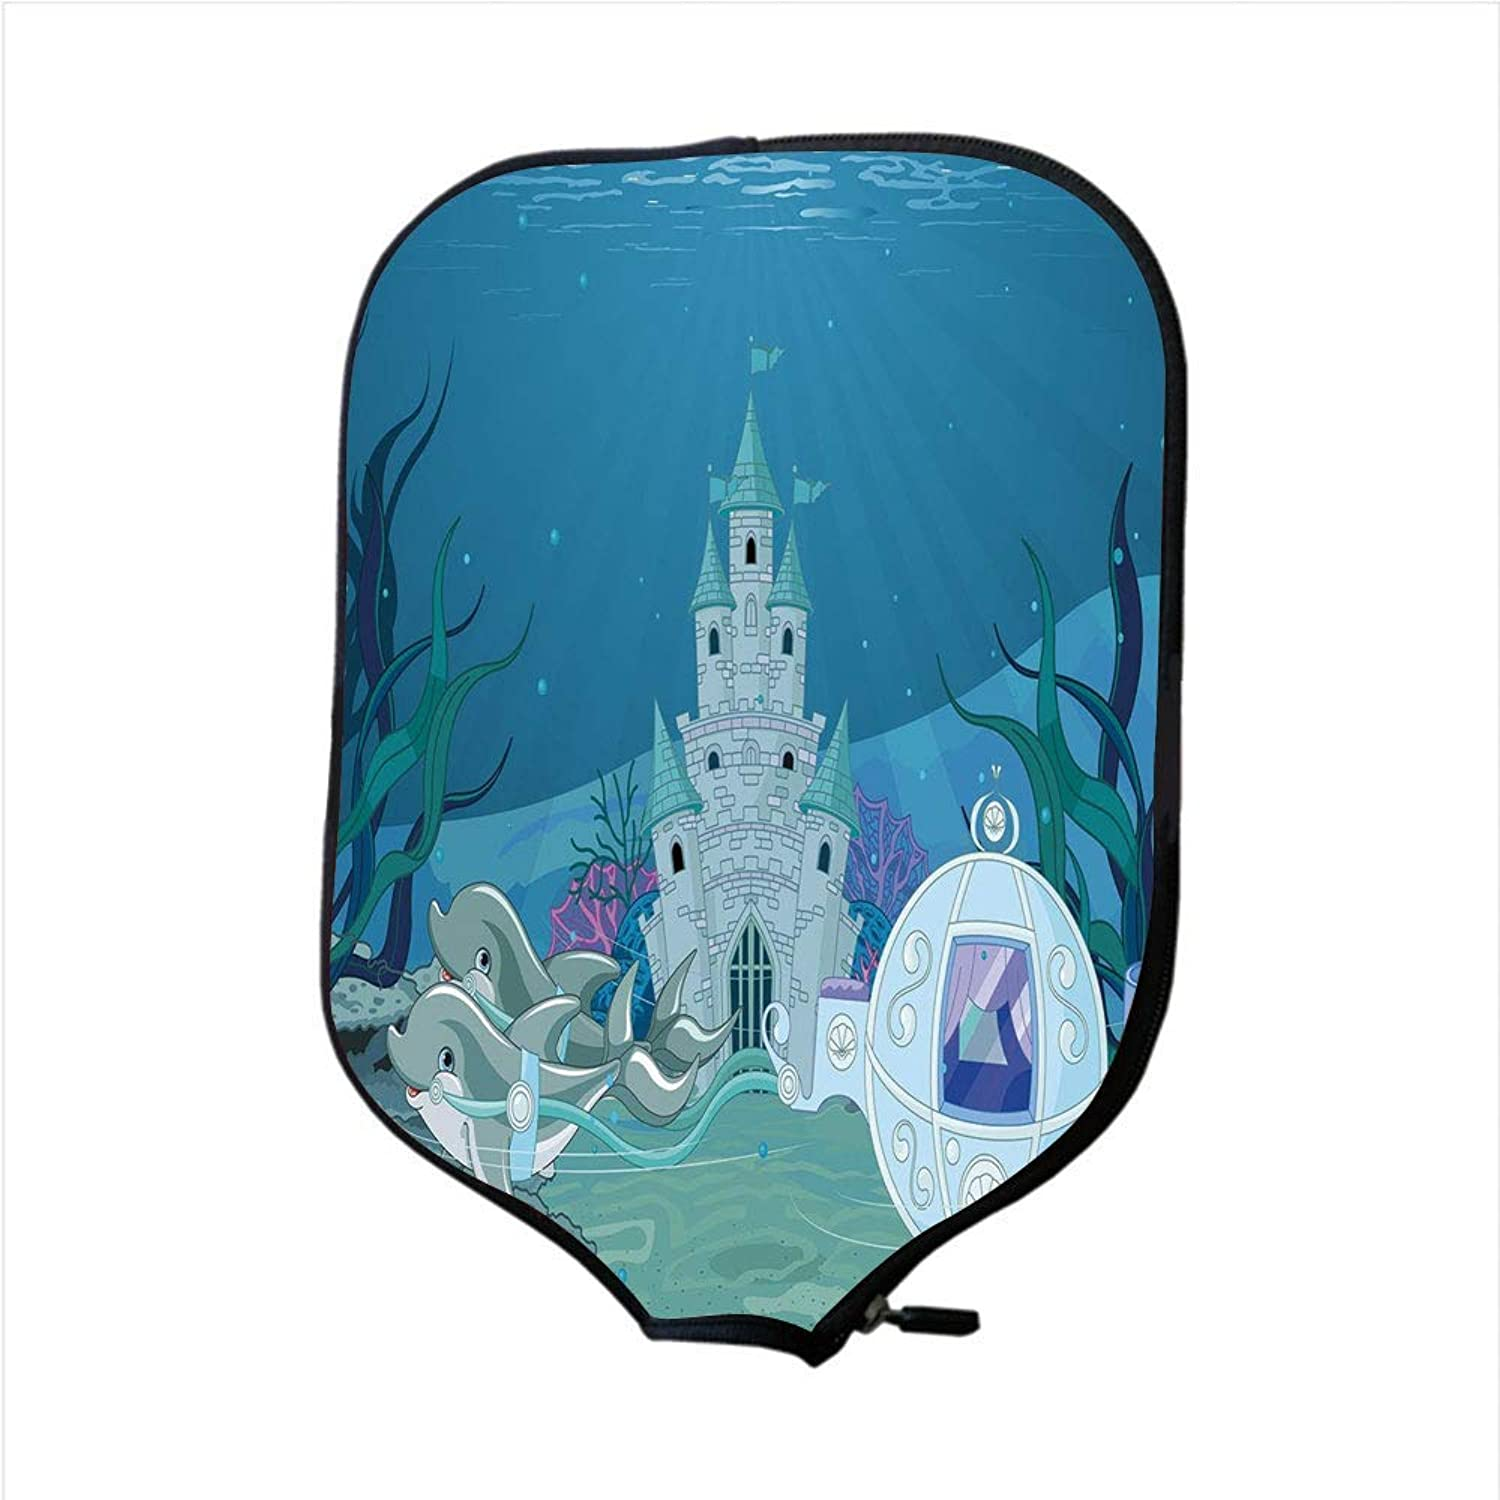 MOKALE Fine Neoprene Pickleball Paddle Racket Cover Case,Ocean,Fairytale Mermaid Castle with Dolphins Moss Fish Sun Beams Art Print,Turquoise Light blueee Teal,Fit for Most Rackets